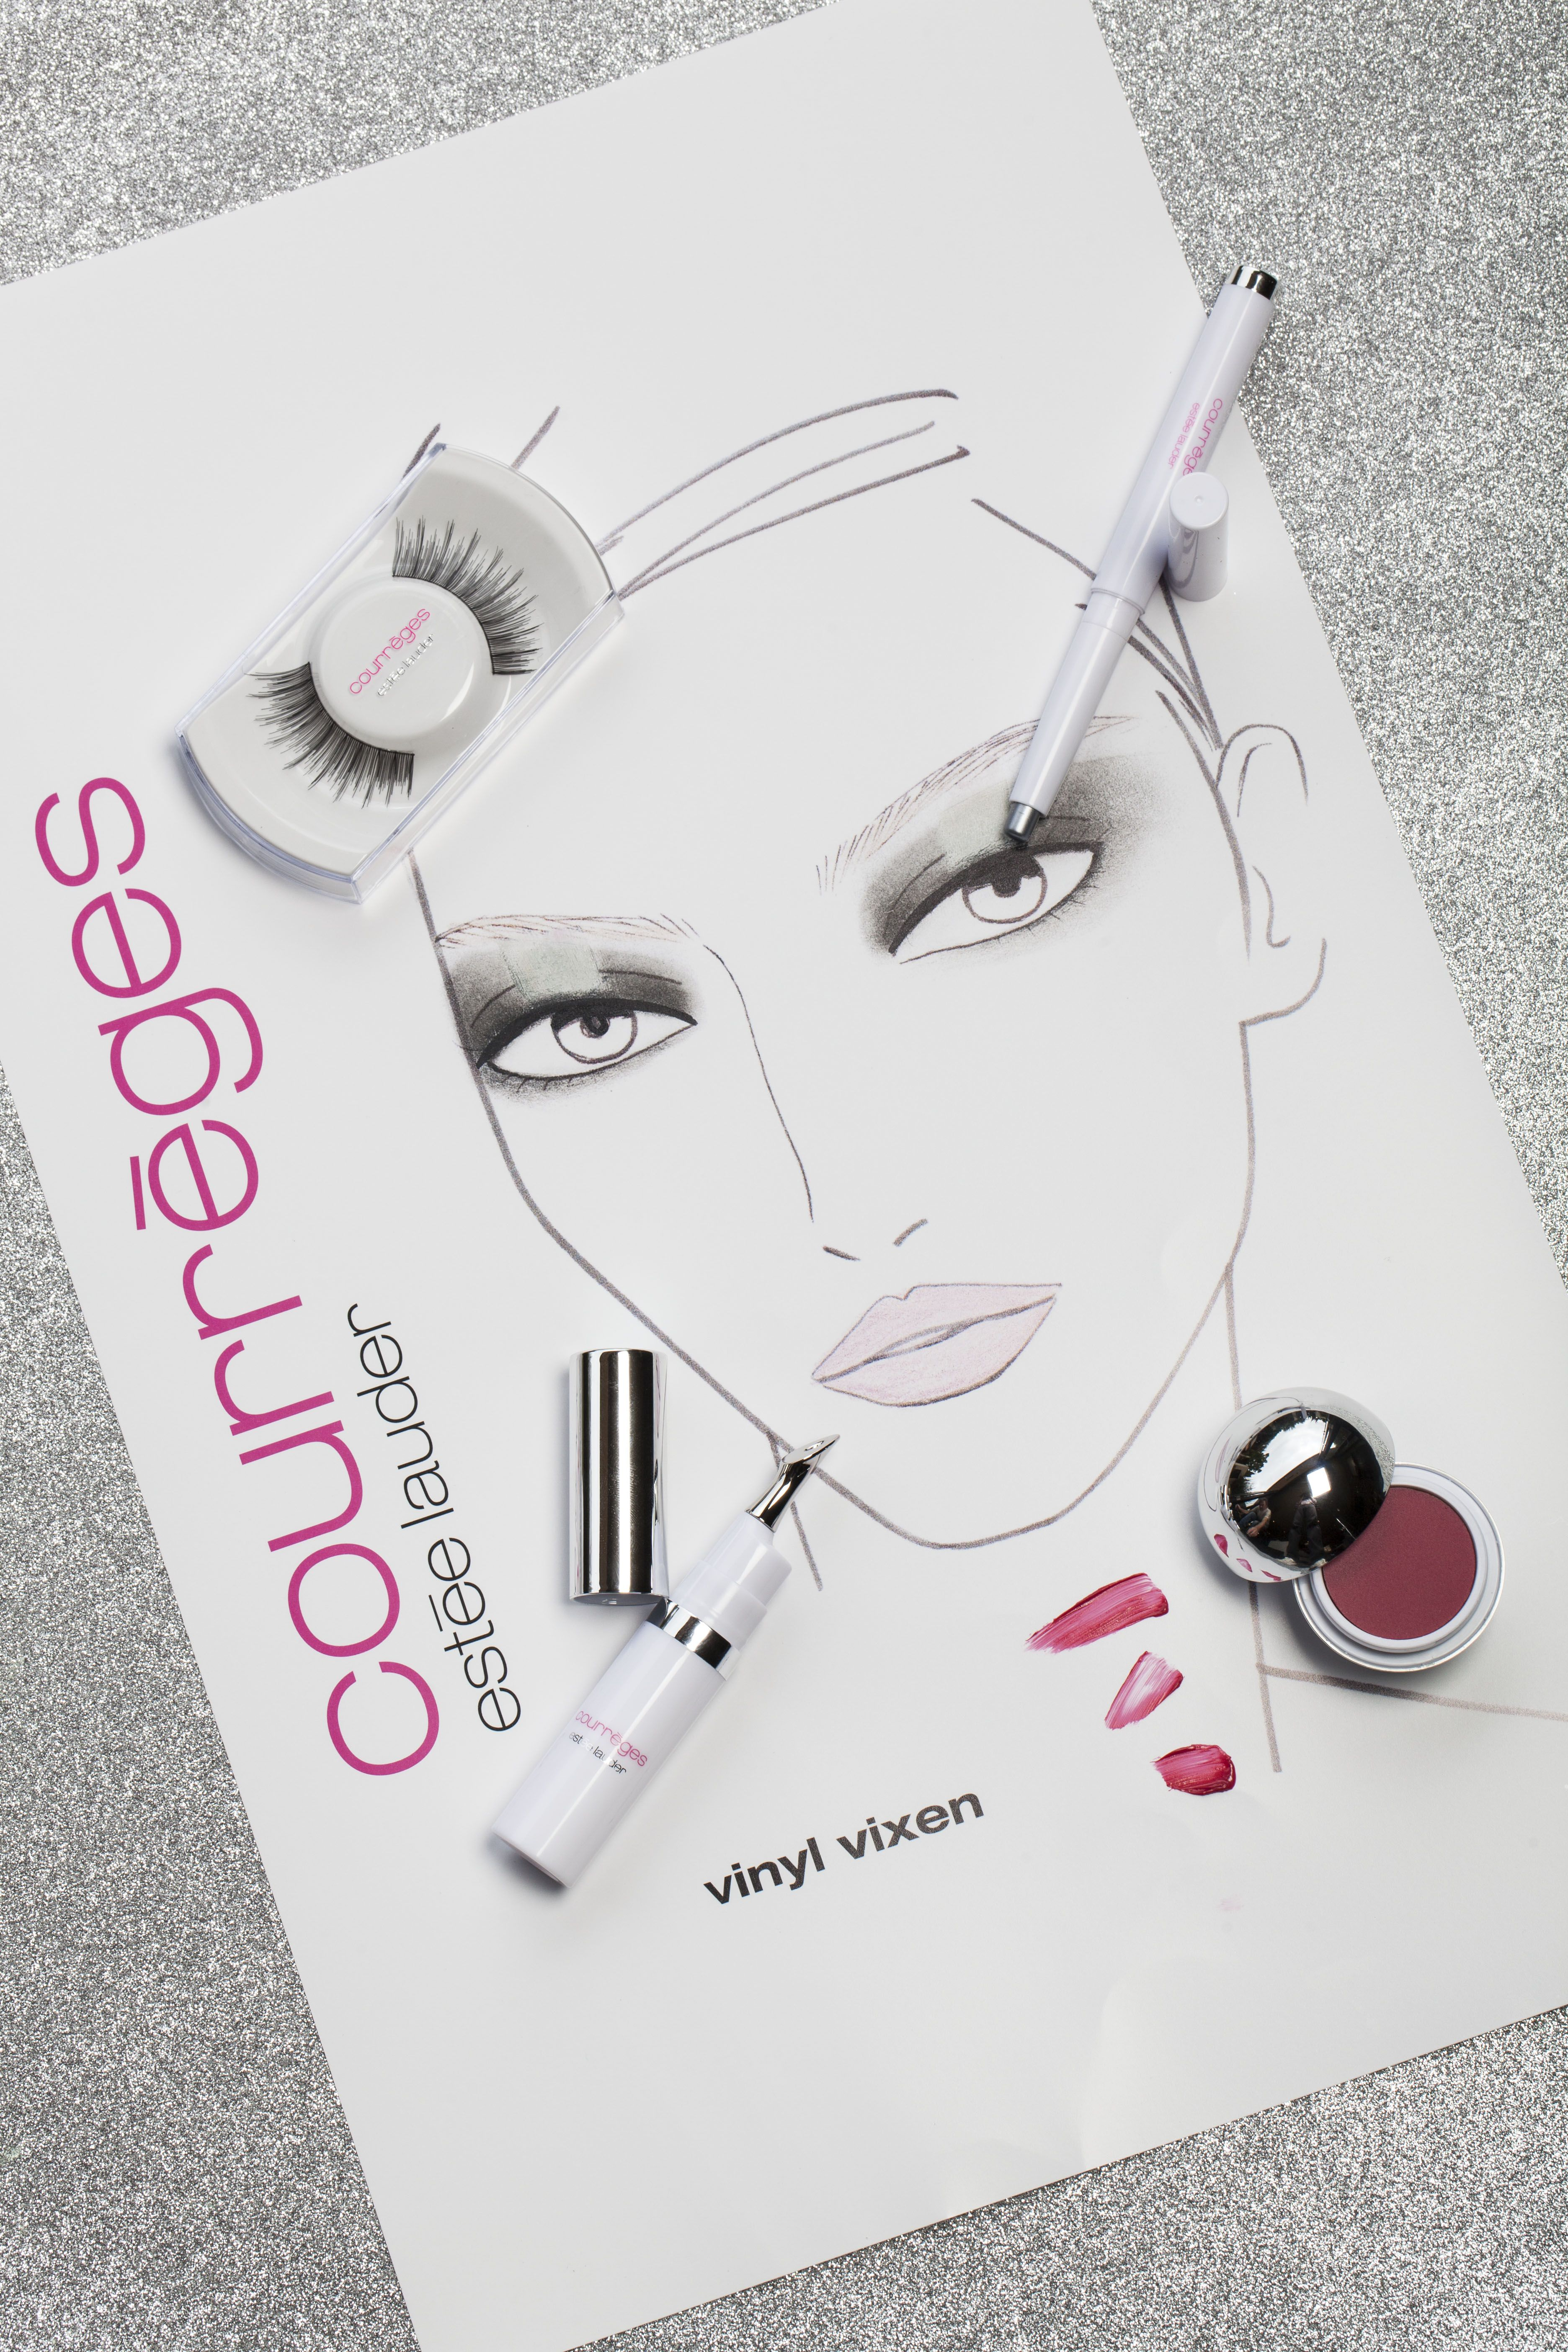 2019 year for girls- Lauder estee courreges spring makeup collection